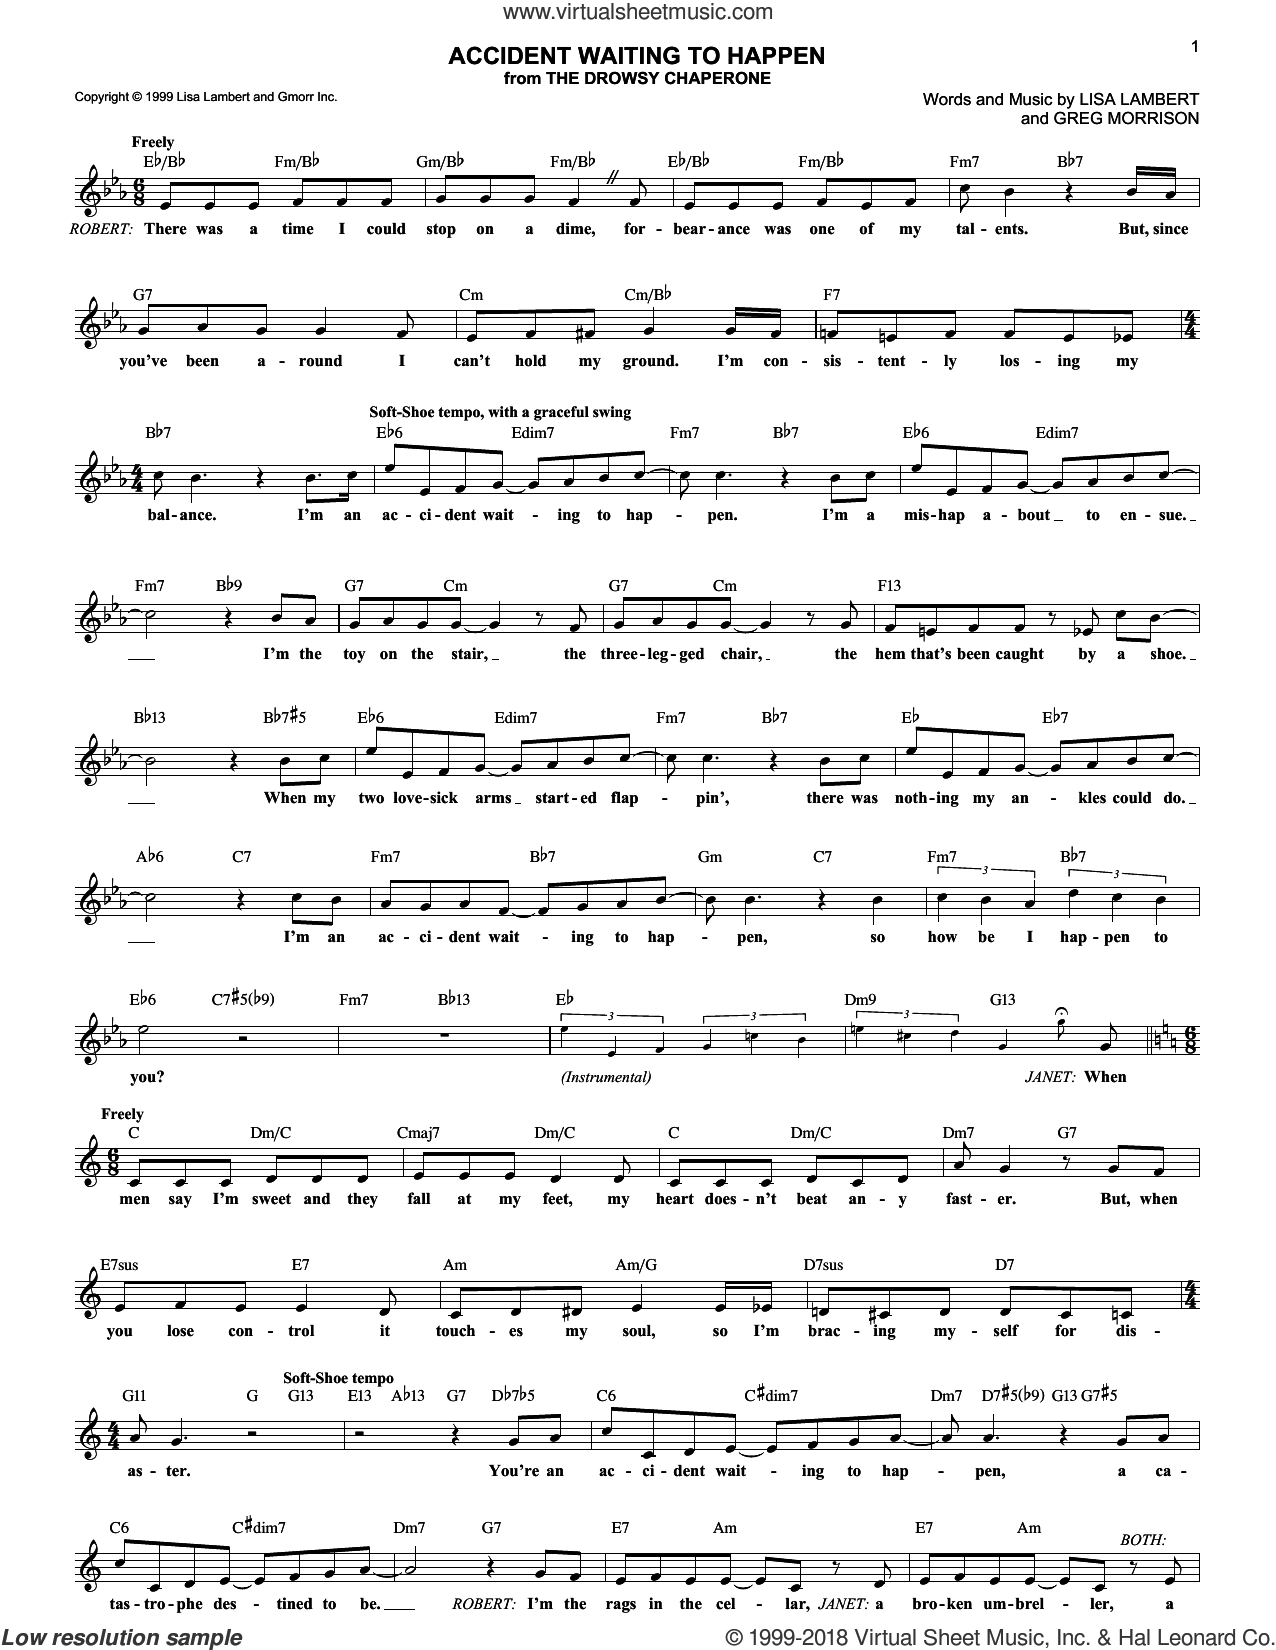 Accident Waiting To Happen sheet music for voice and other instruments (fake book) by Lisa Lambert, Drowsy Chaperone (Musical) and Greg Morrison, intermediate skill level